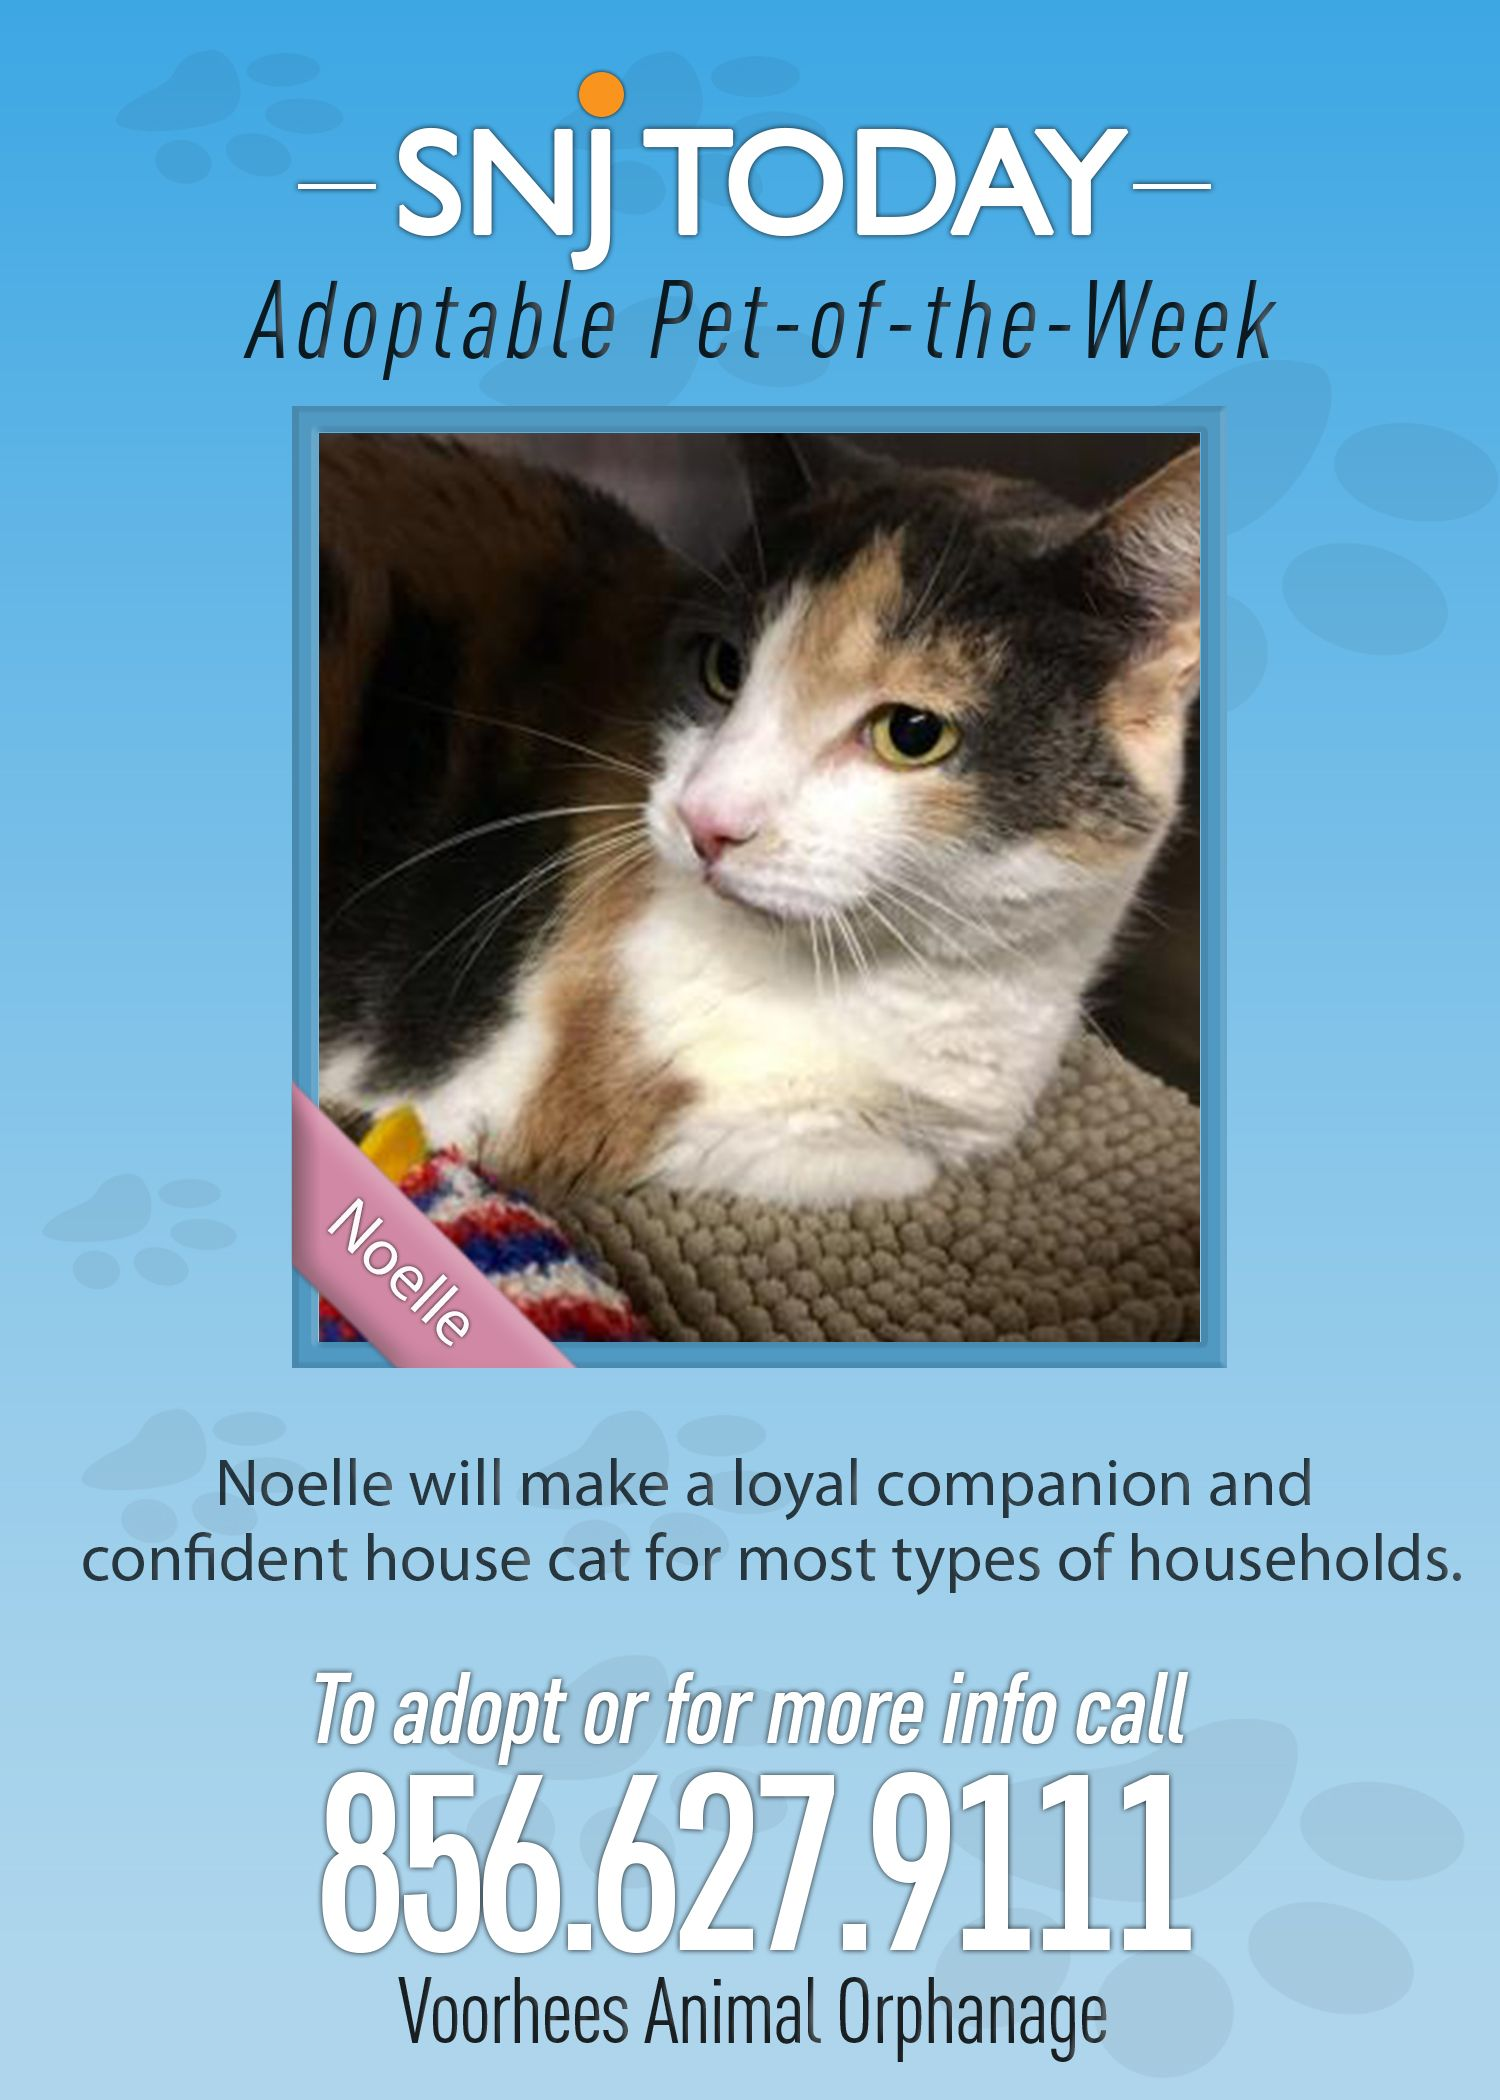 Snj Today S Adoptable Pet Of The Week Is Noelle Noelle Is A Friendly And Outgoing 6 Year Old Domestic Shor Animal Shelter Adoption Animal Shelter Cat Adoption